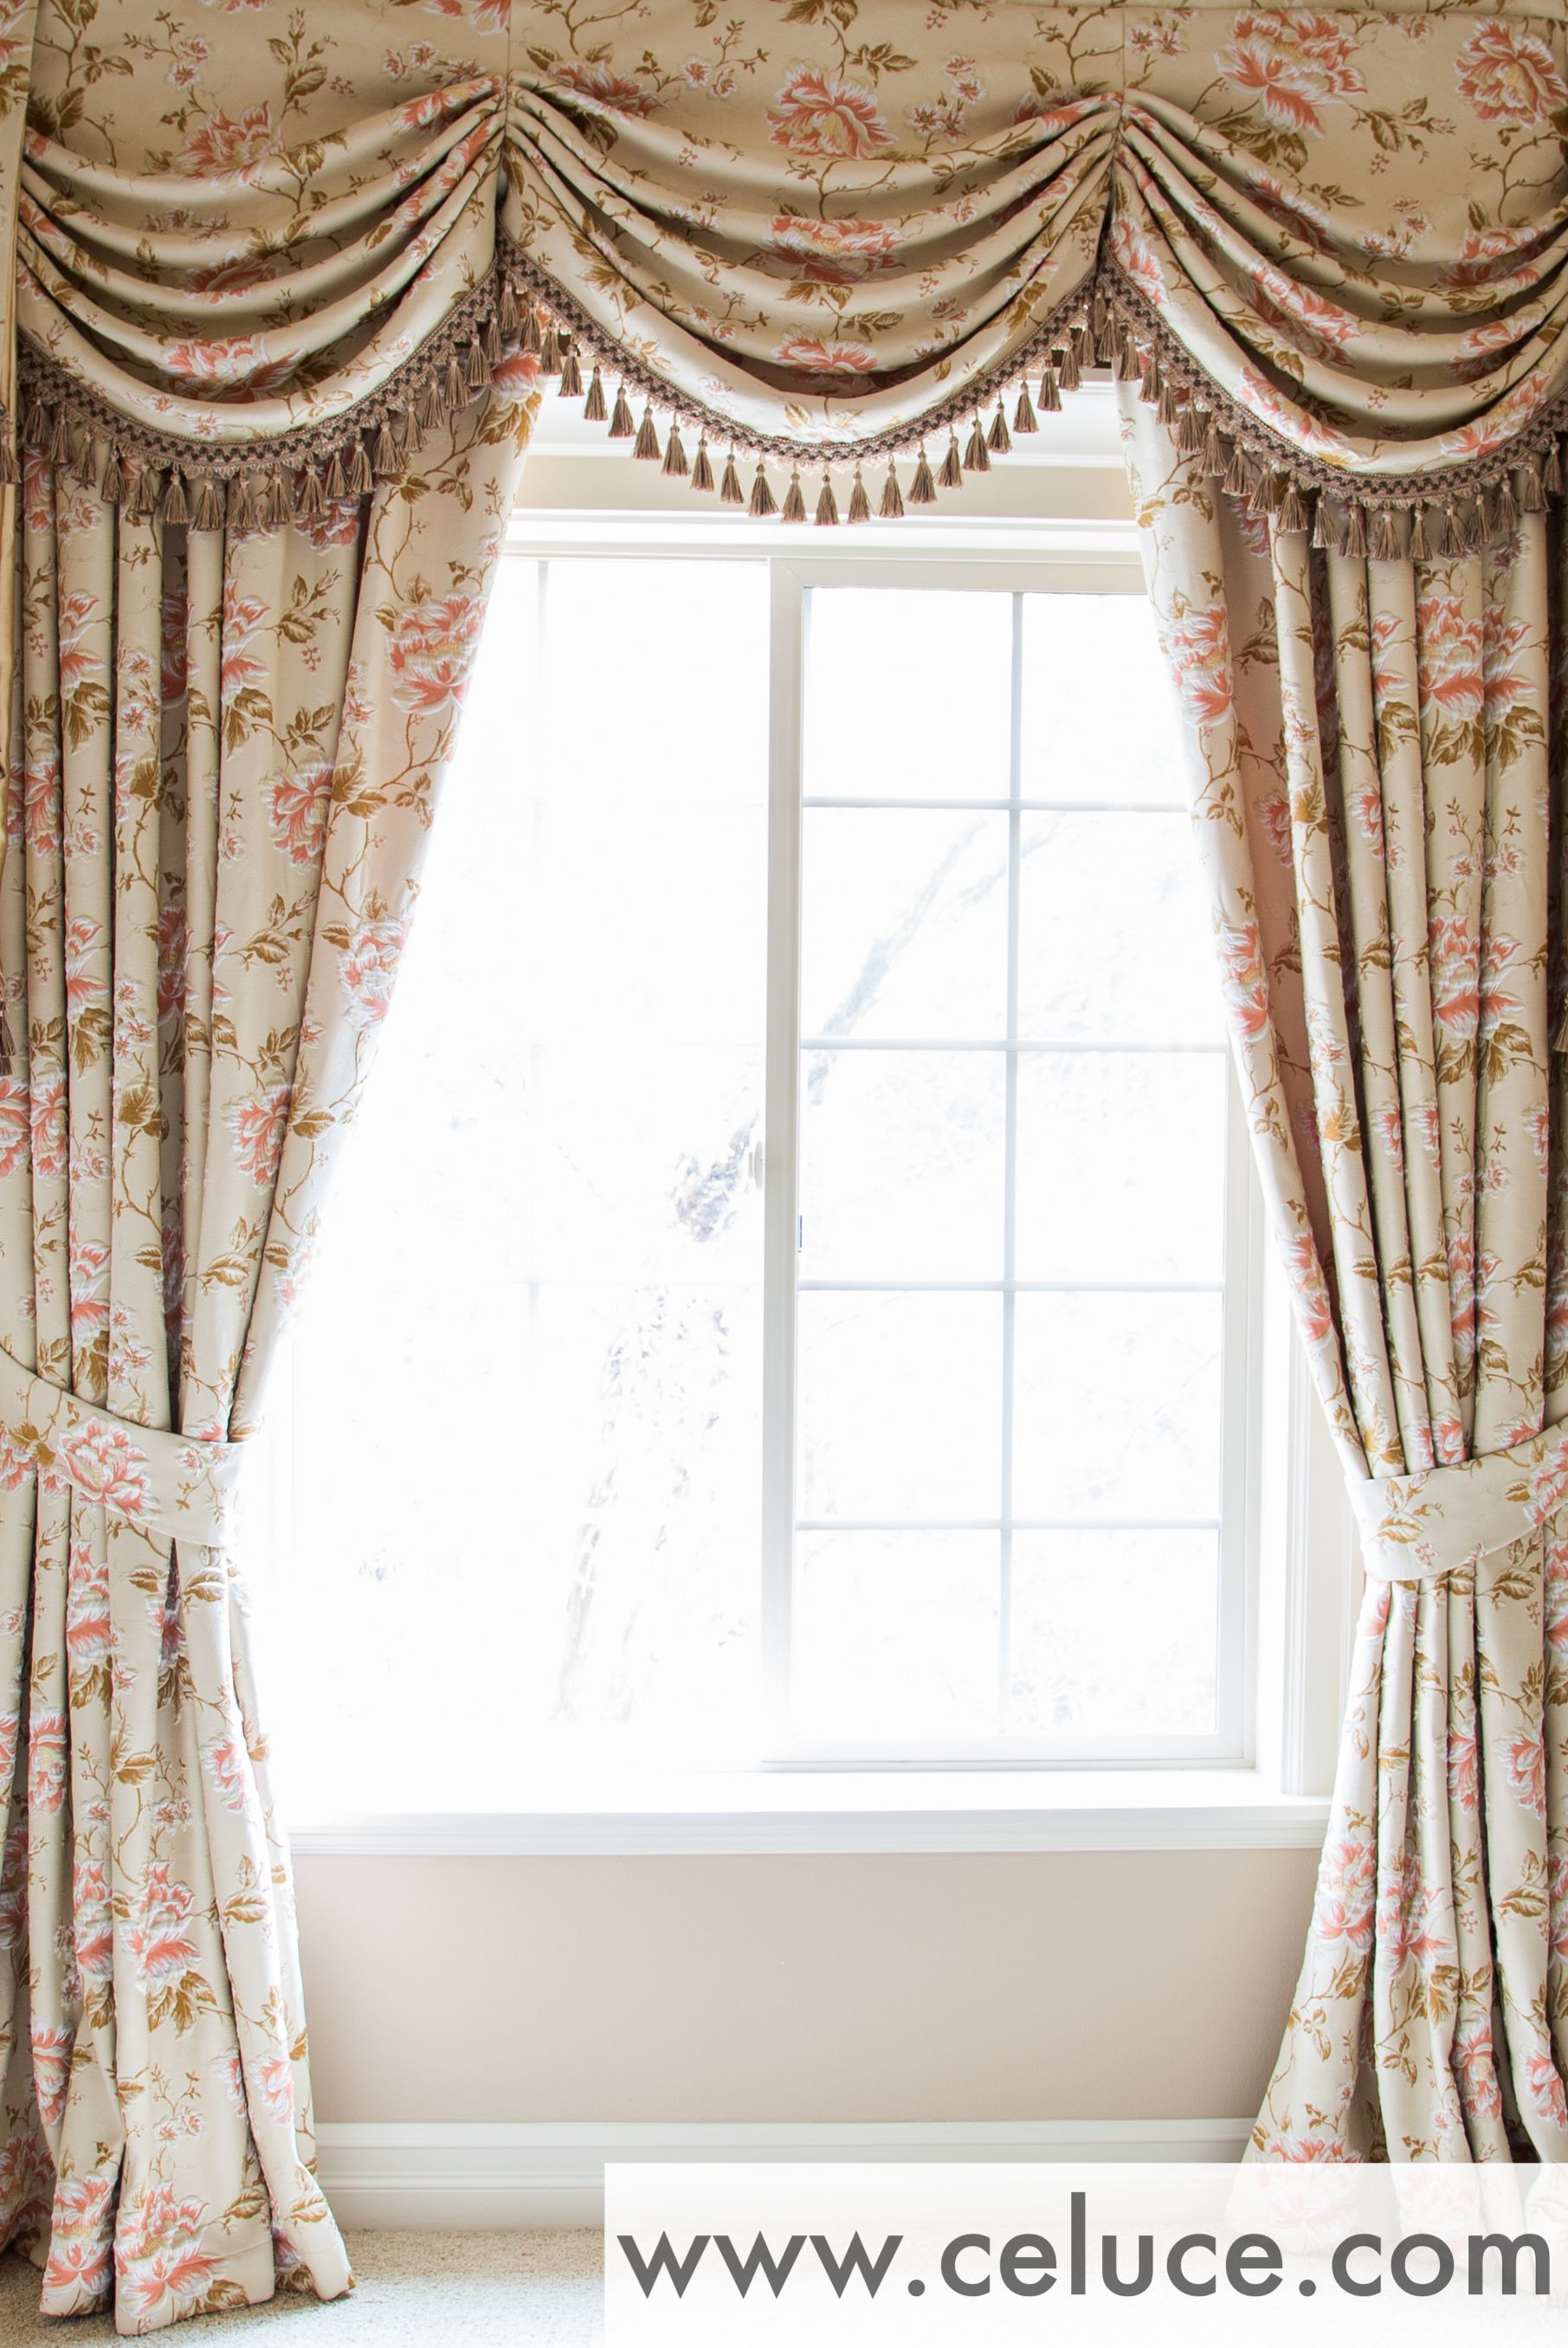 Www celuce com customize curtains online swag valance victorian style